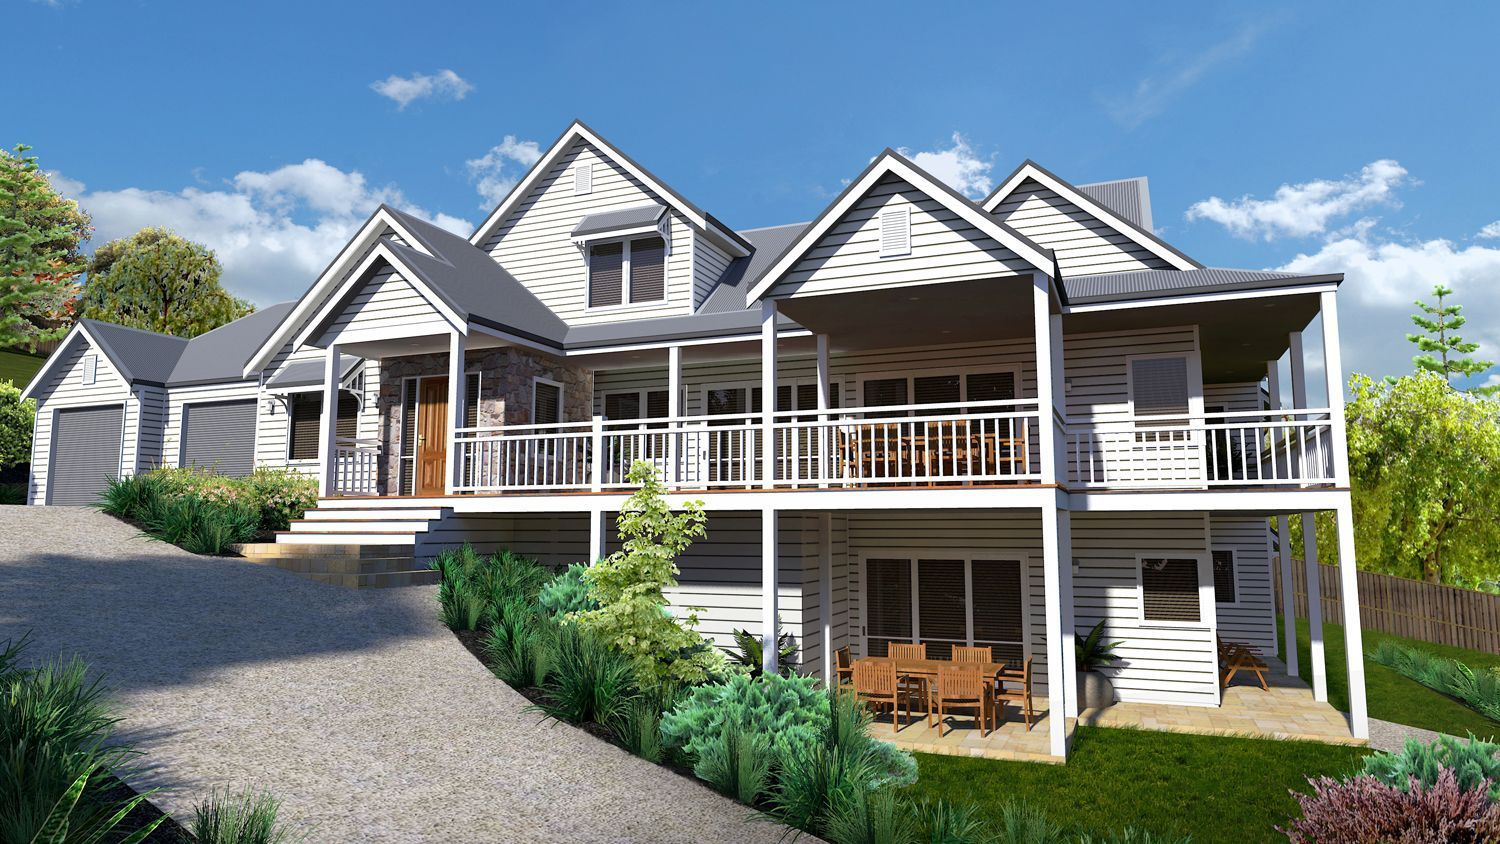 Bright Manor Picture of and two storey design traditional